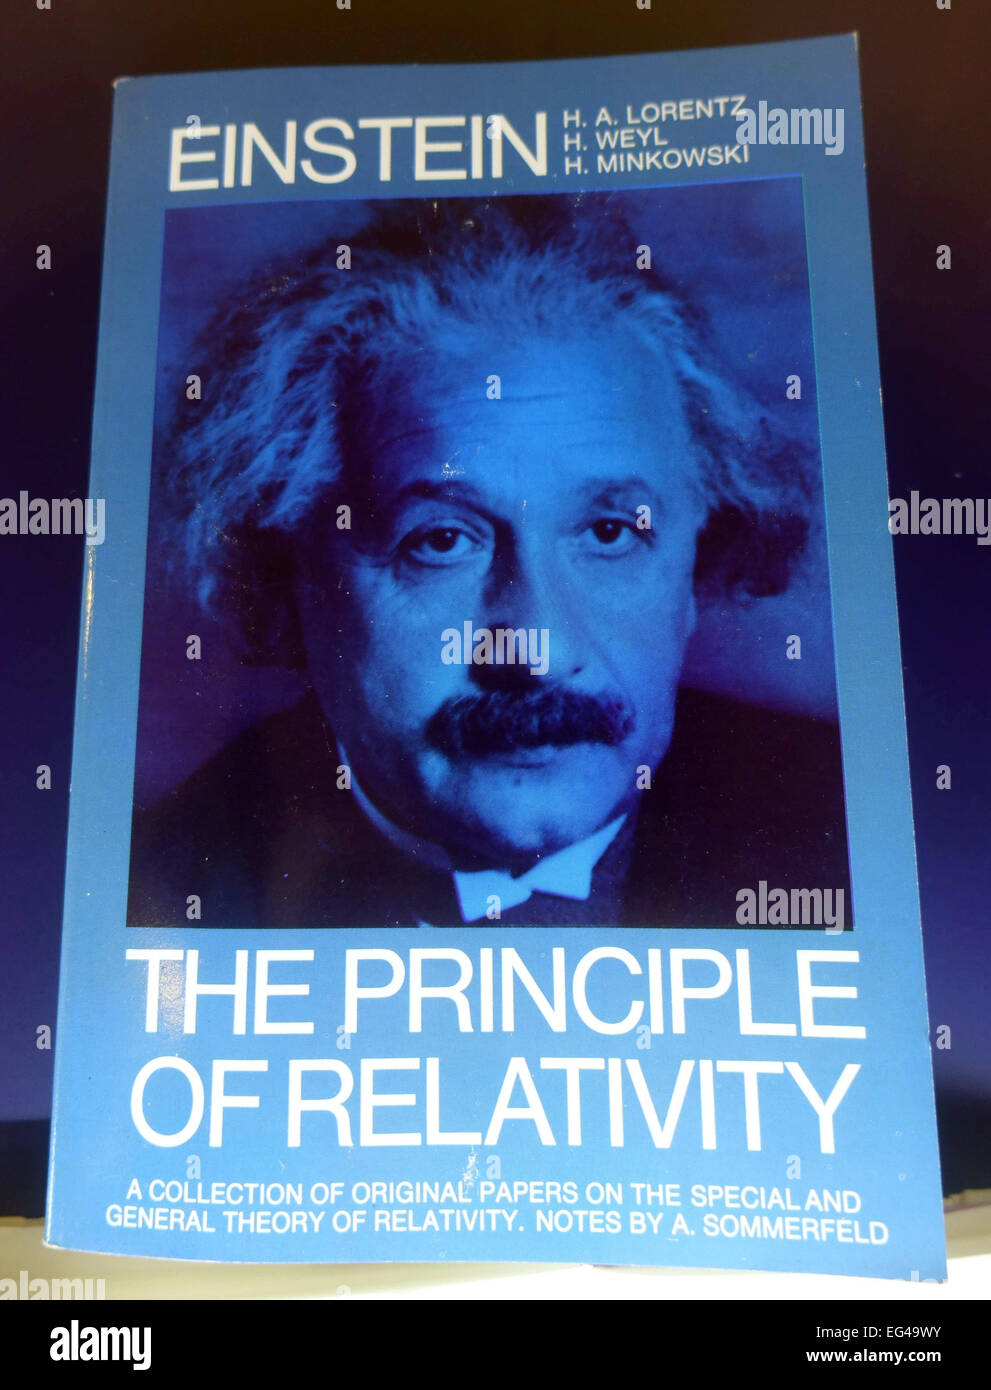 Book about Albert Einstein and relativity displayed in museum, Las Palmas de Gran Canaria - Stock Image